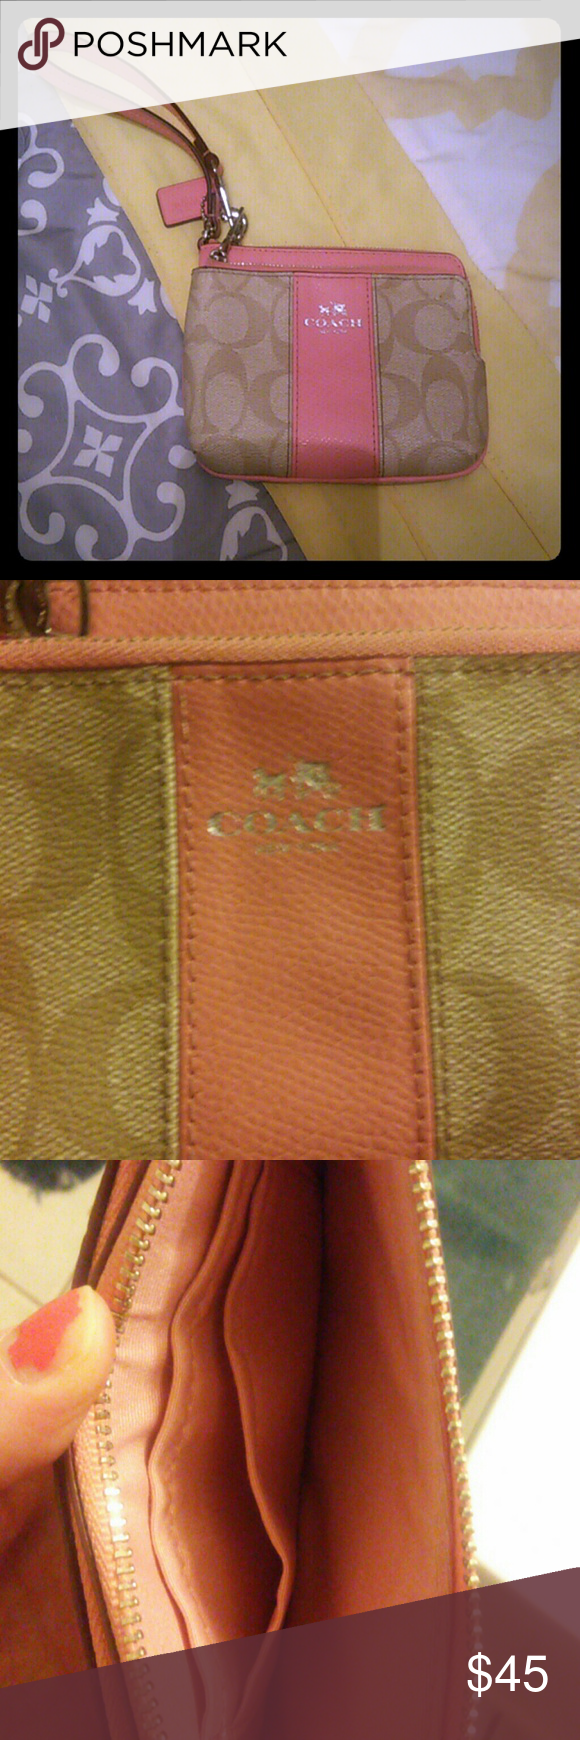 Coach wristlet. Practically brand new. Used only a few times.no holes stains etc. 100% authentic. $45 Coach Bags Clutches & Wristlets